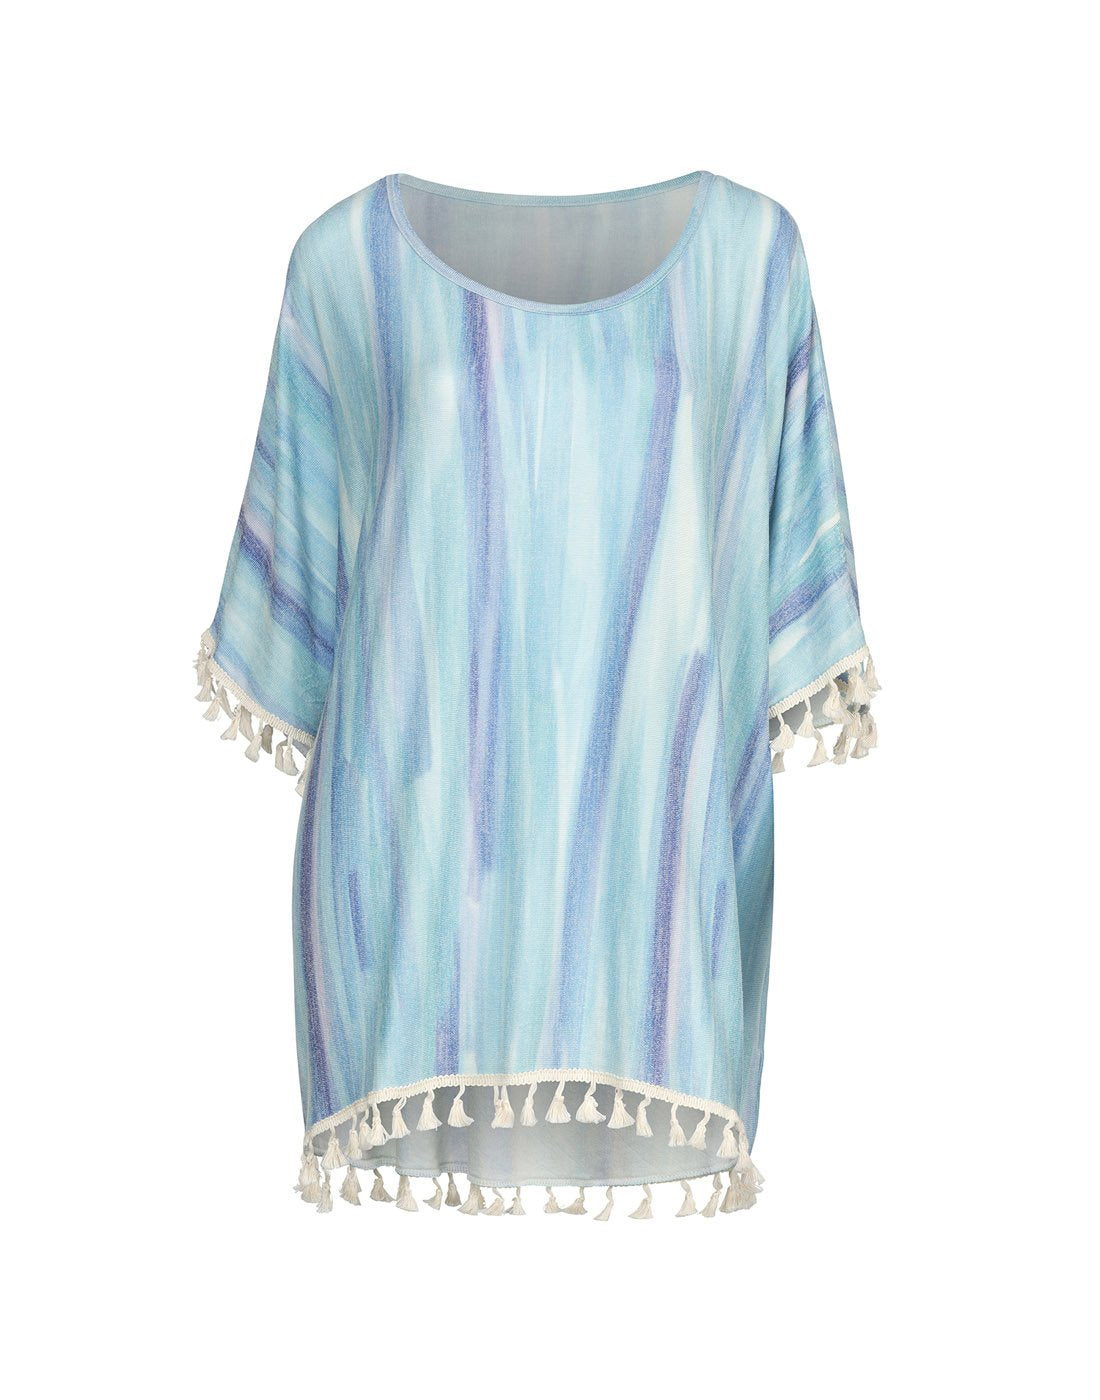 Elsie & Zoey Watercolour Beach Cover-Up